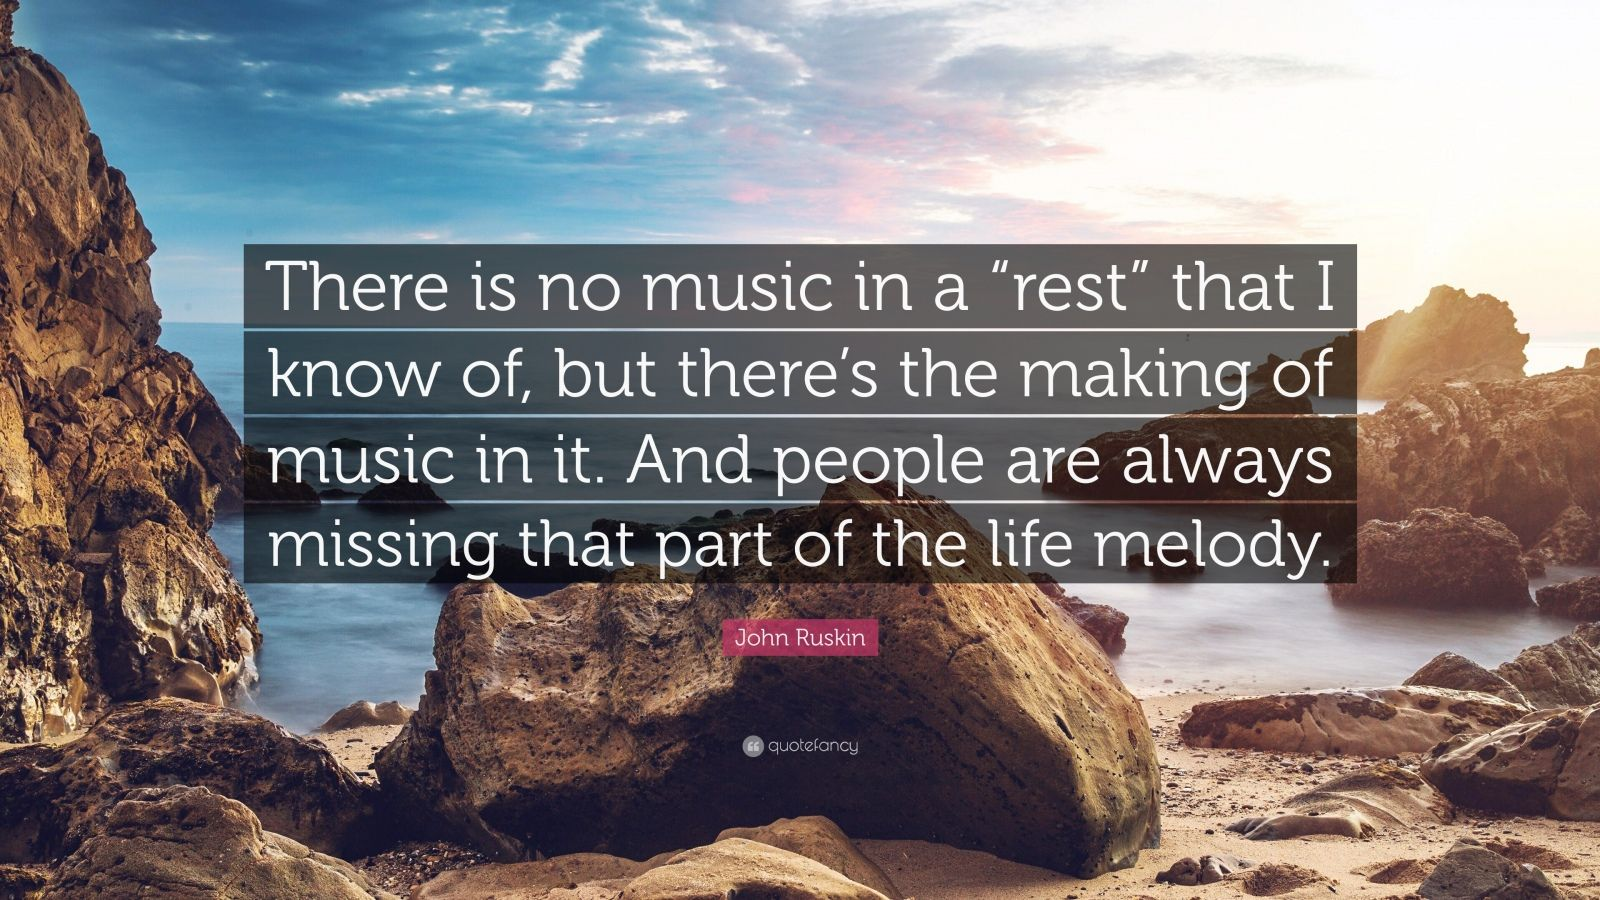 """John Ruskin Quote: """"There is no music in a """"rest"""" that I know of, but there's the making of music in it. And people are always missing that part of the life melody."""""""